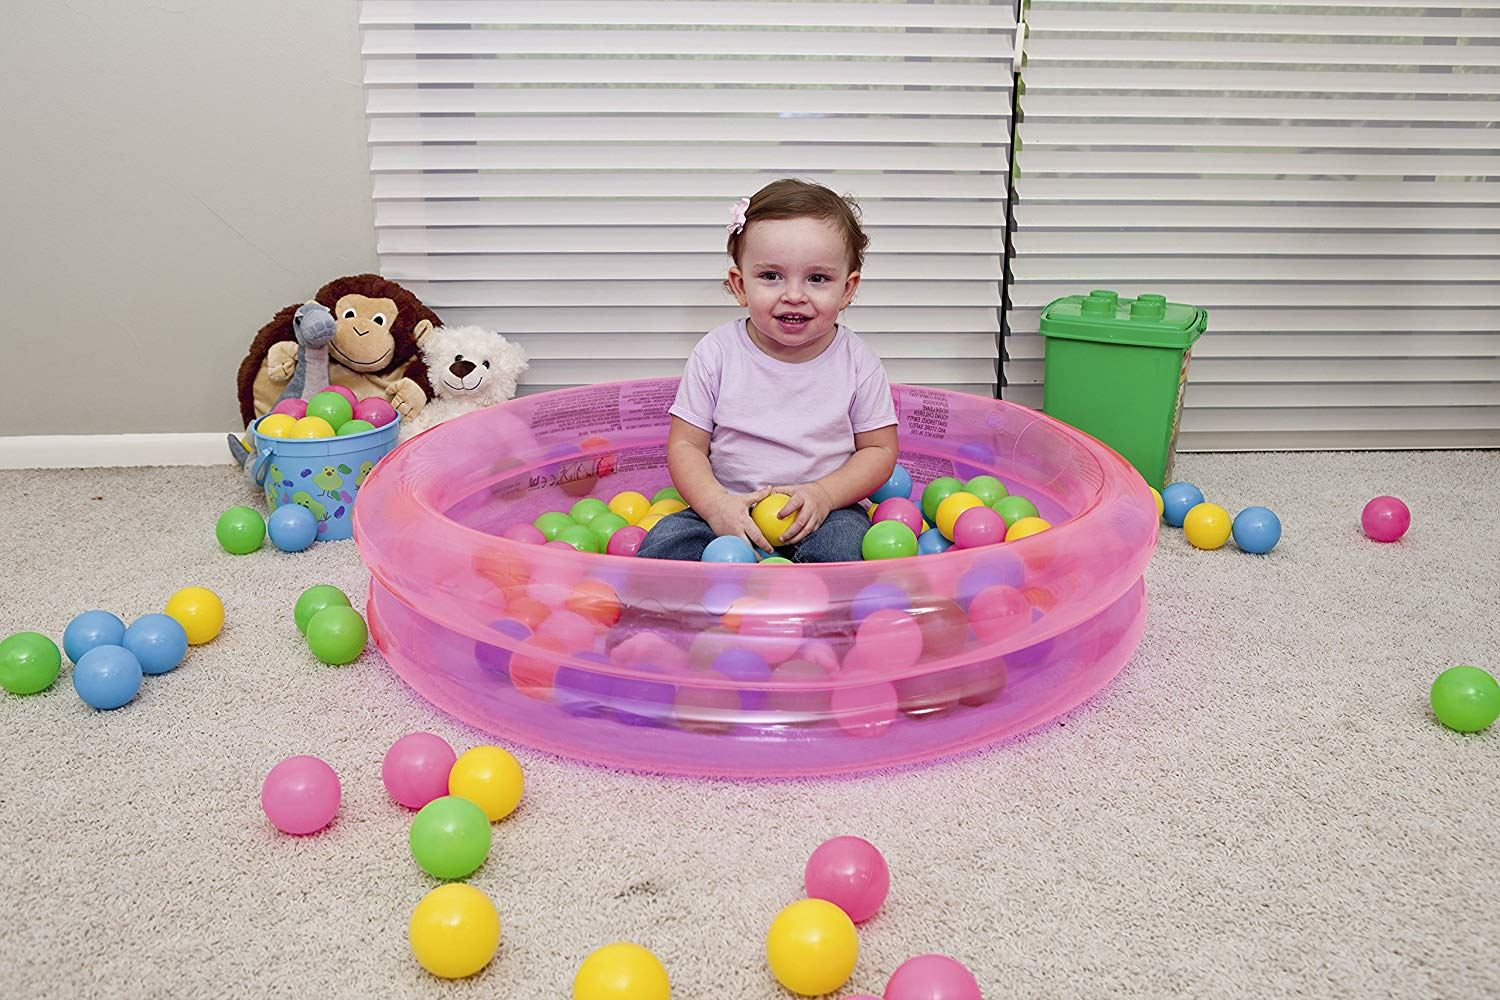 BESTWAY CHILDRENS INFLATABLE 2 RING PADDLING POOL BALL PLAY PIT GAME KIDS TOY